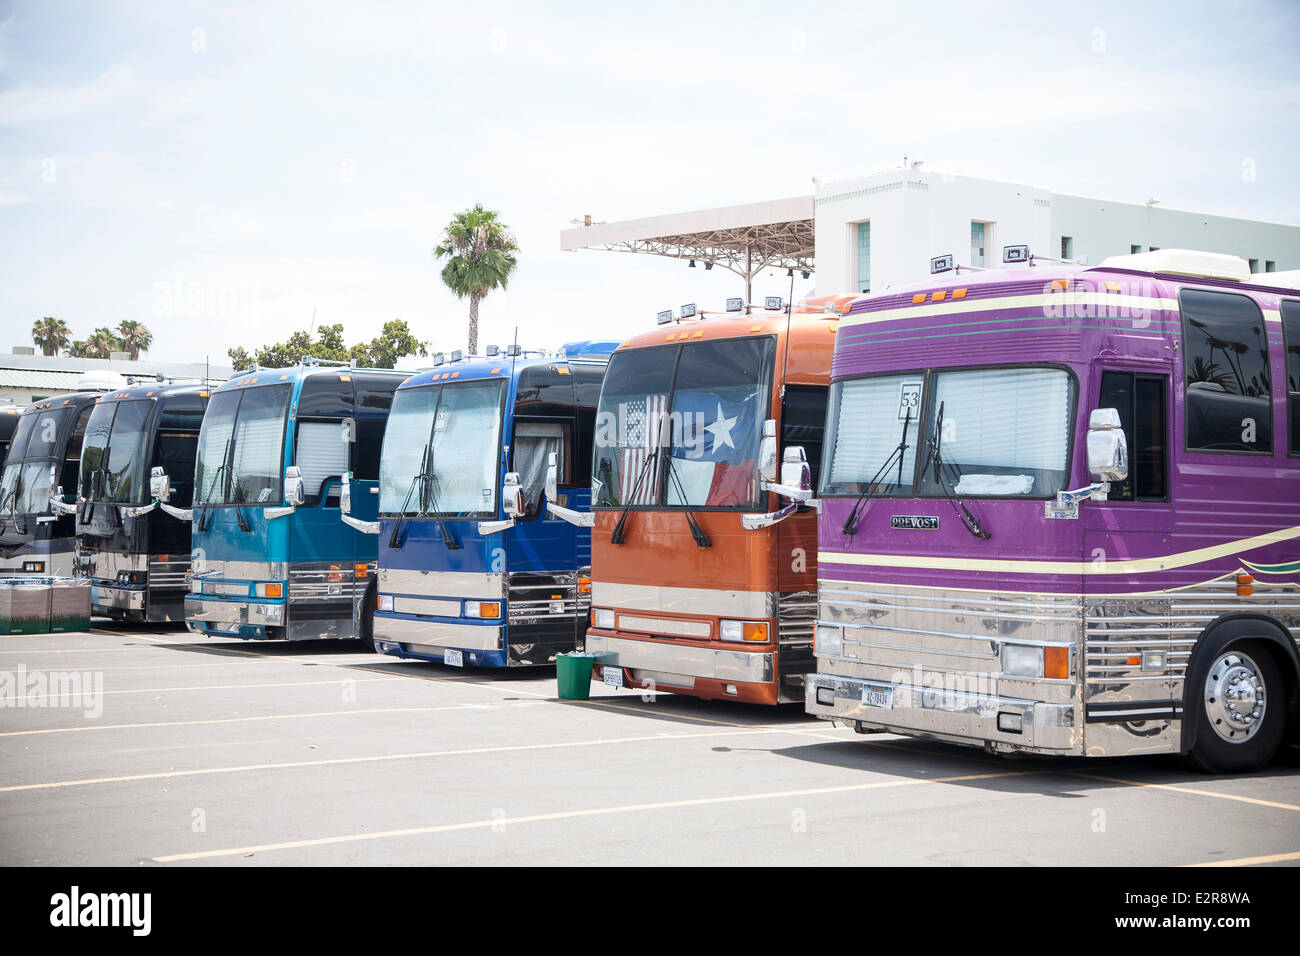 Pomona, CA, USA. 20th June, 2014. Tour buses parked at the Vans Warped Tour. Thousands of young alternative music - Stock Image